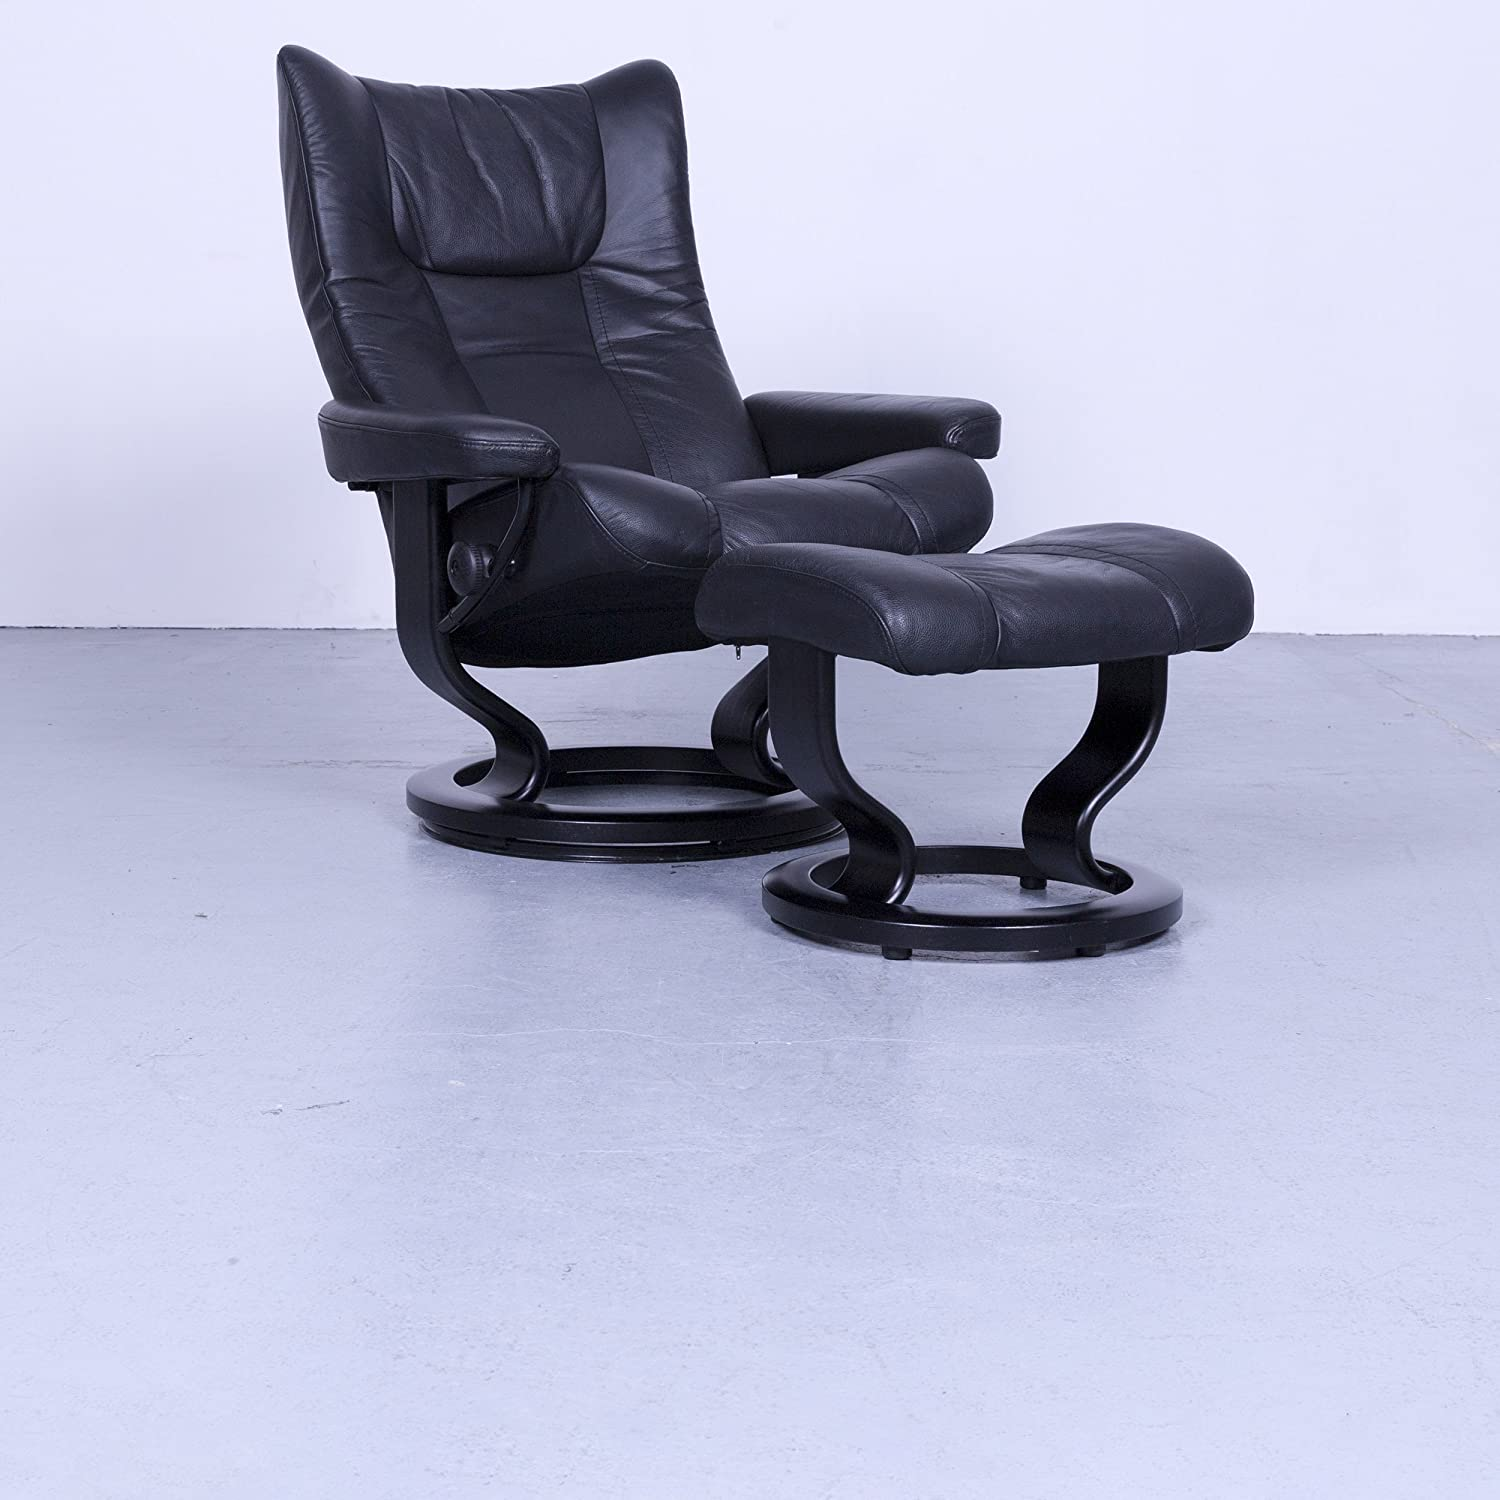 Ekornes Stressless Wing Relax Sessel Garnitur + Hocker ...